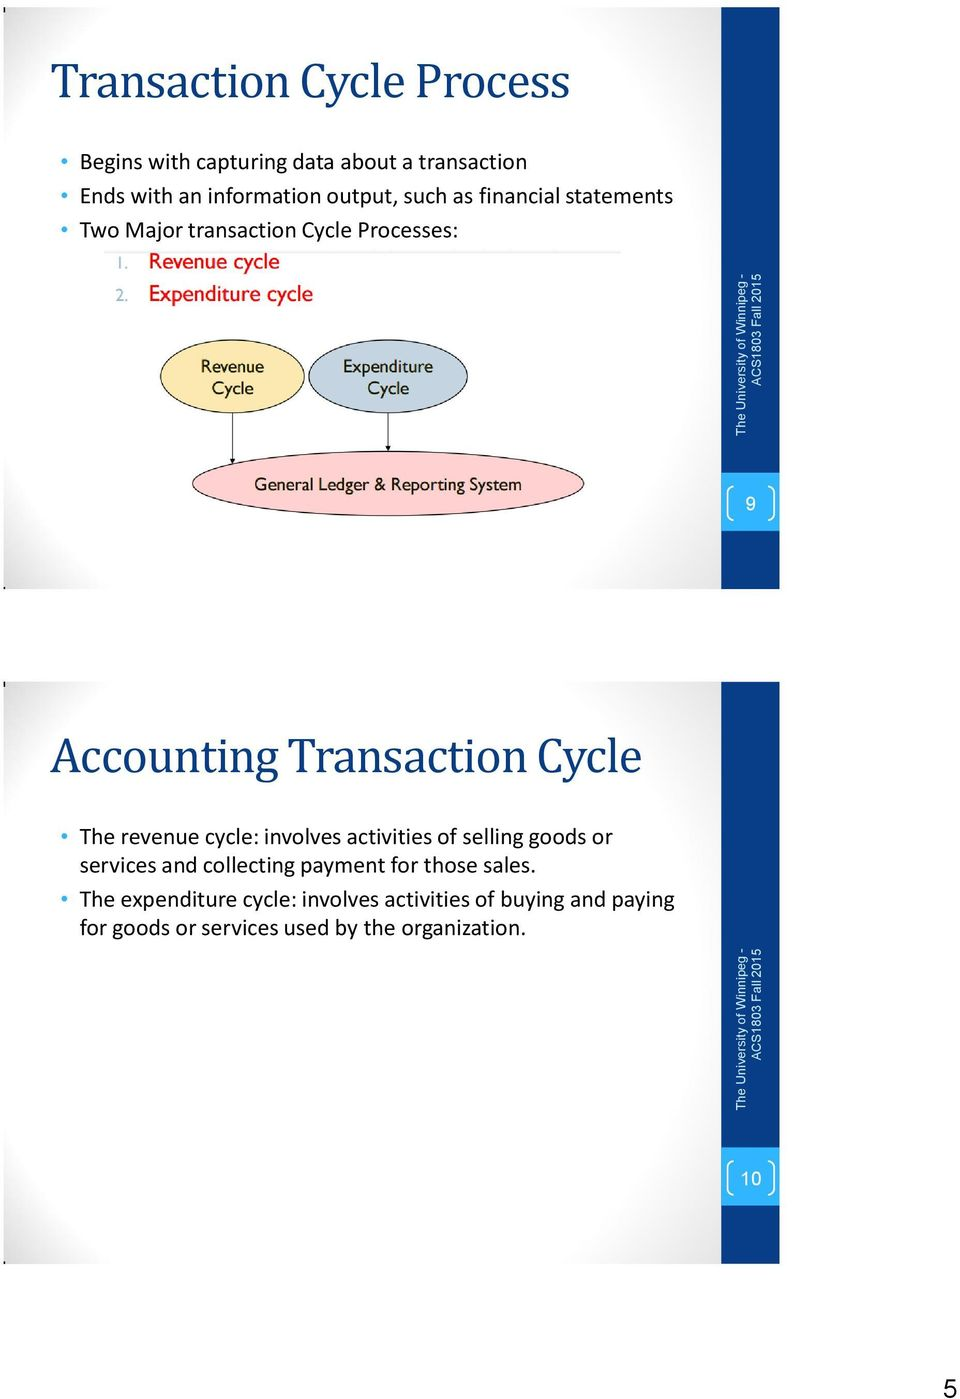 revenue cycle: involves activities of selling goods or services and collecting payment for those sales.